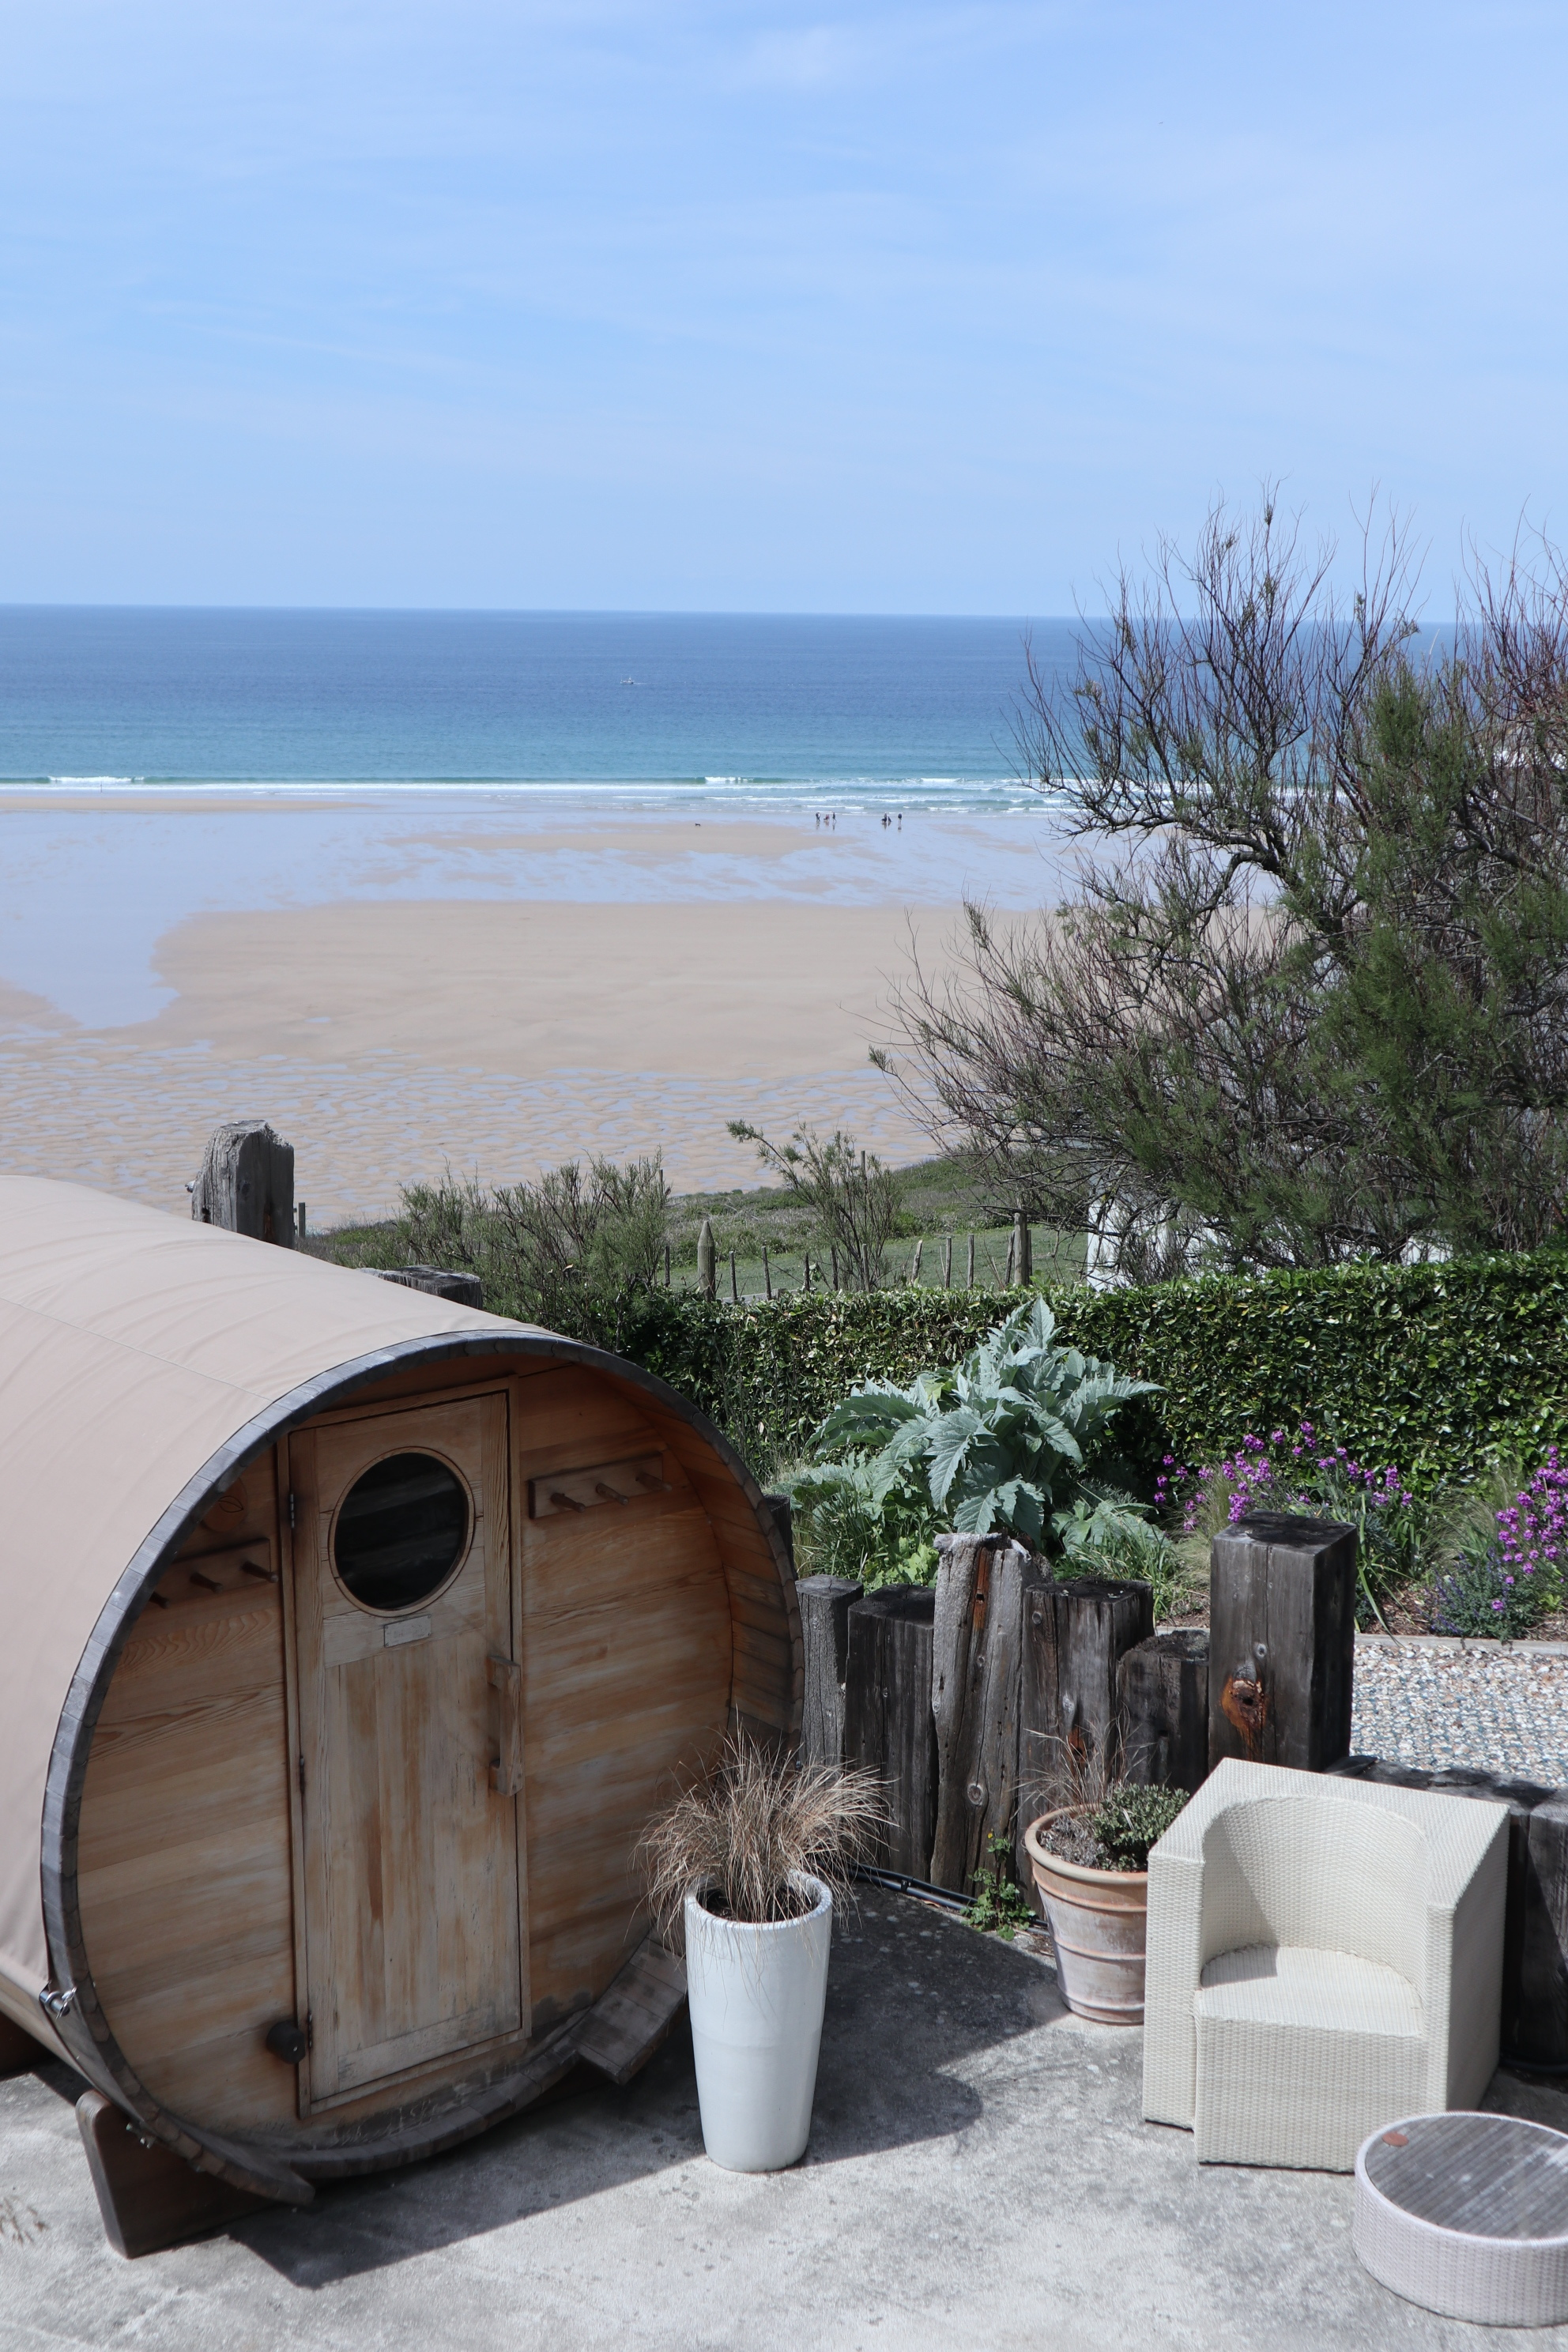 The Scarlet Hotel in Mawgan Porth is home to Cornwall's most luxurious spa. Enjoy views from the cliff hot tub over the beach and relax by the pool.